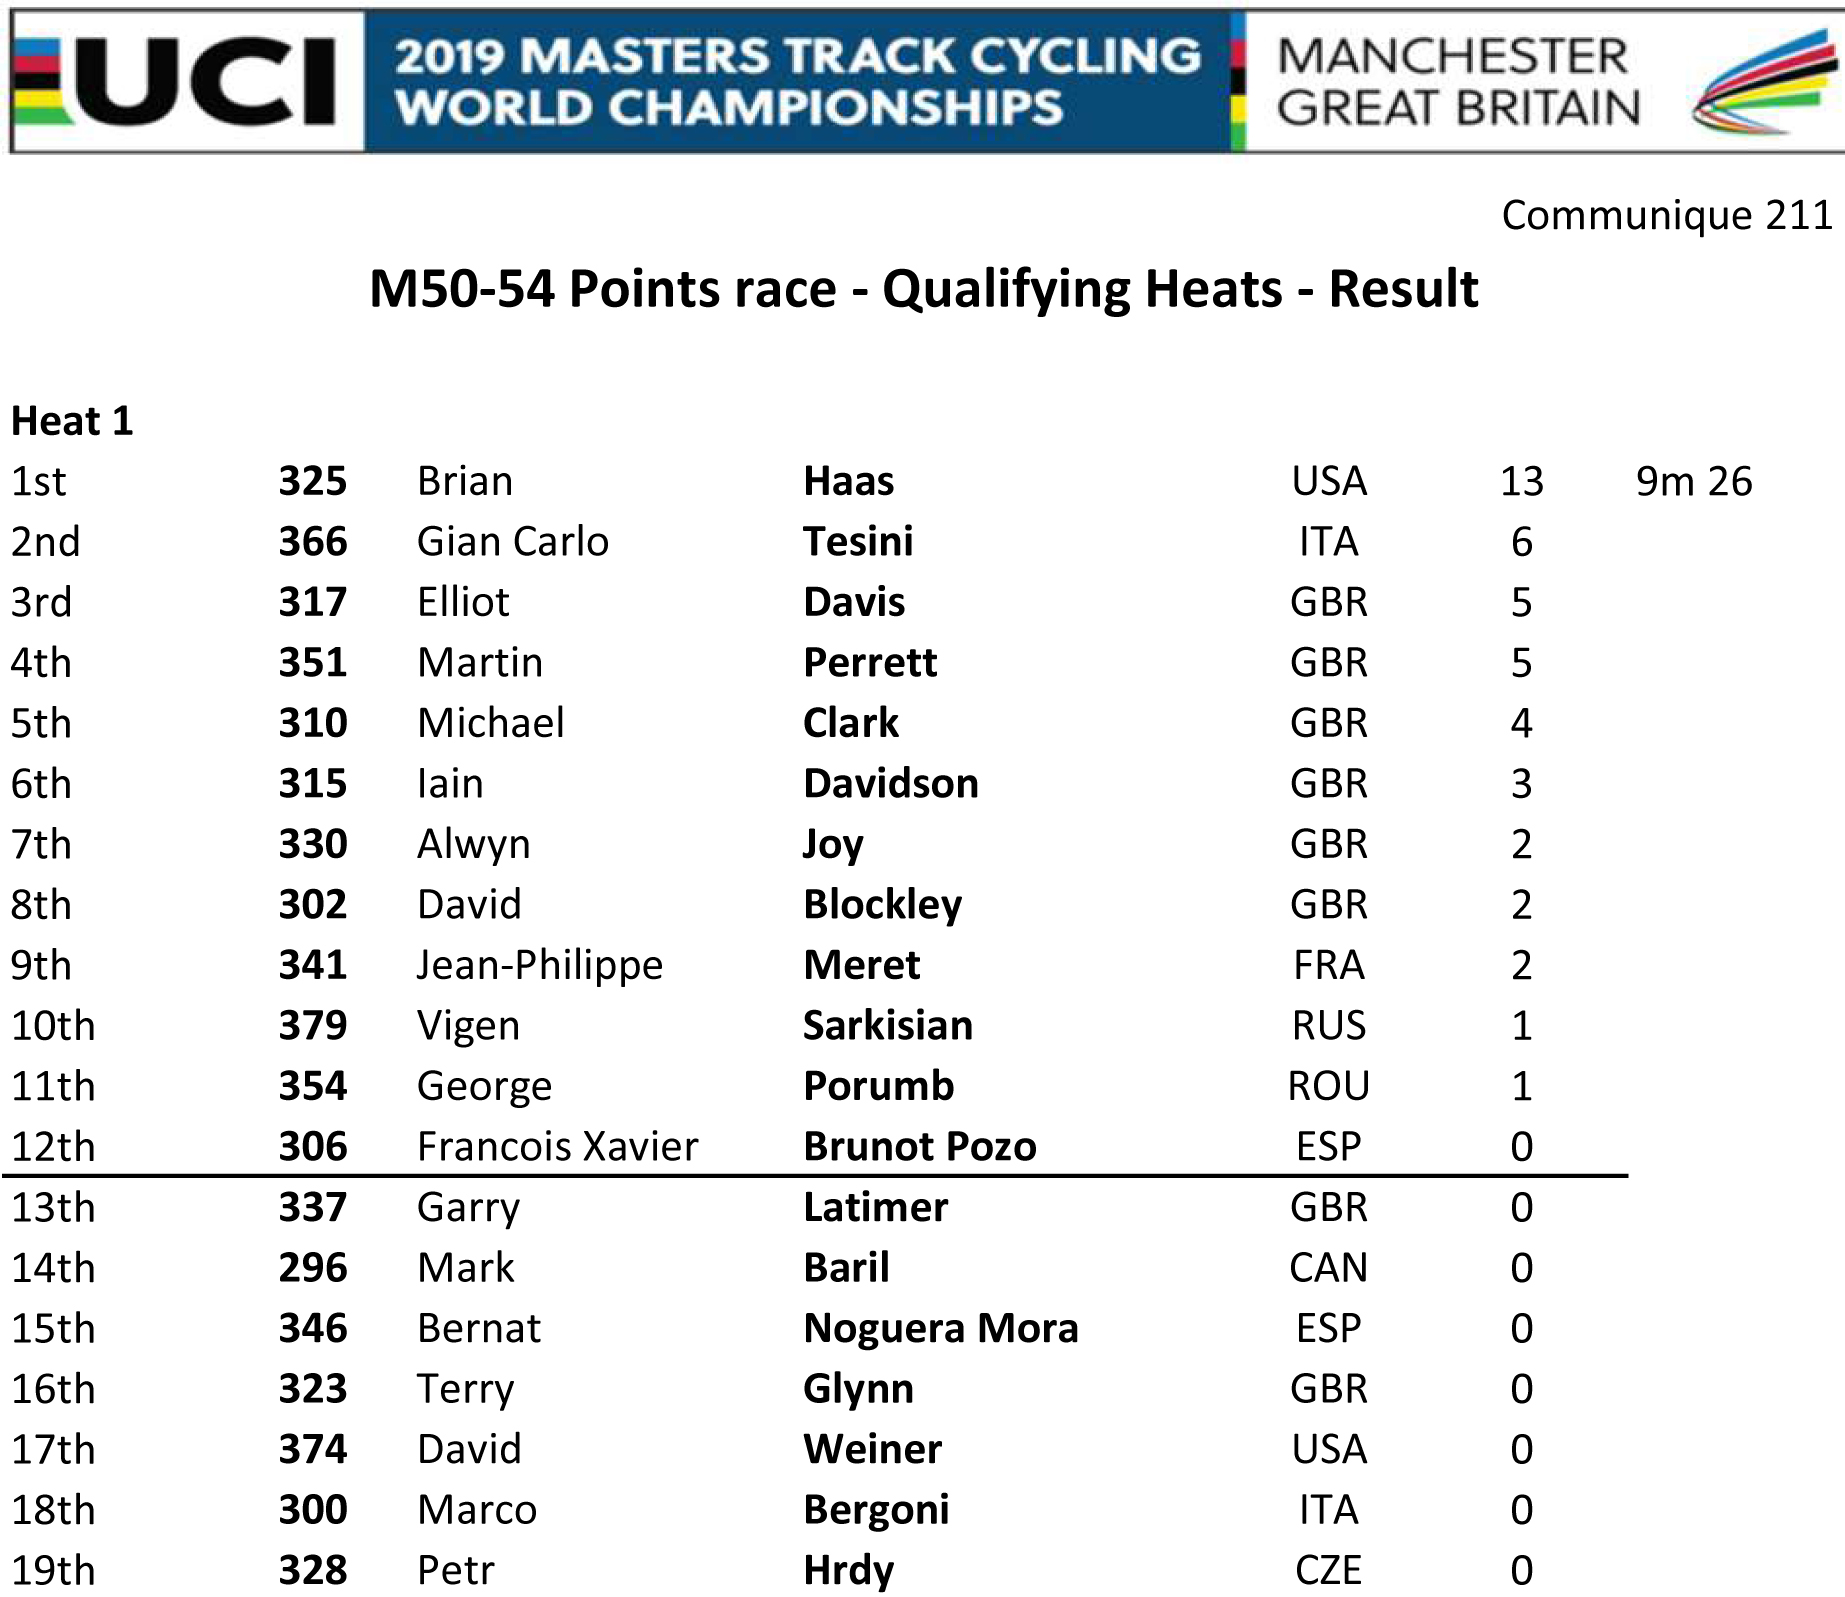 M5054 POINTS RACE QUAL HEAT 1 RESULT